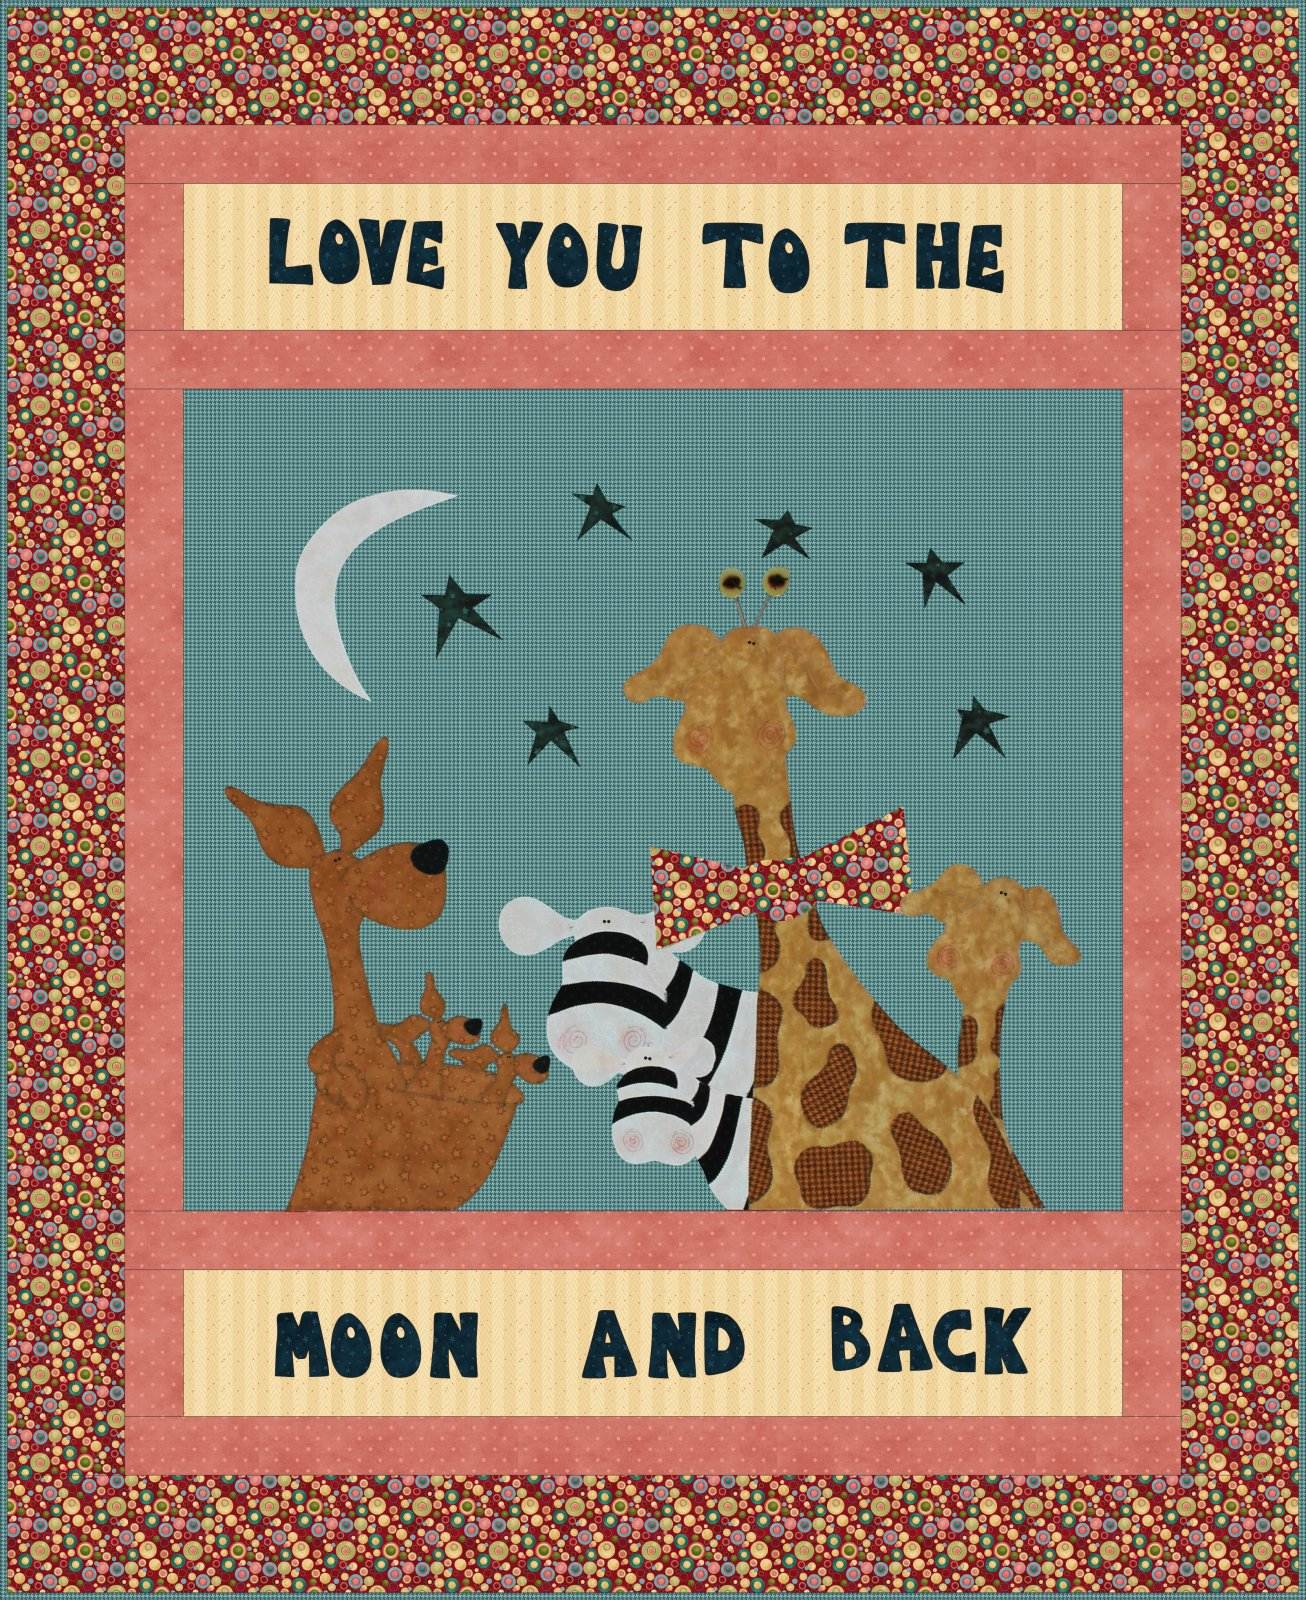 Love You to the Moon and Back - 2